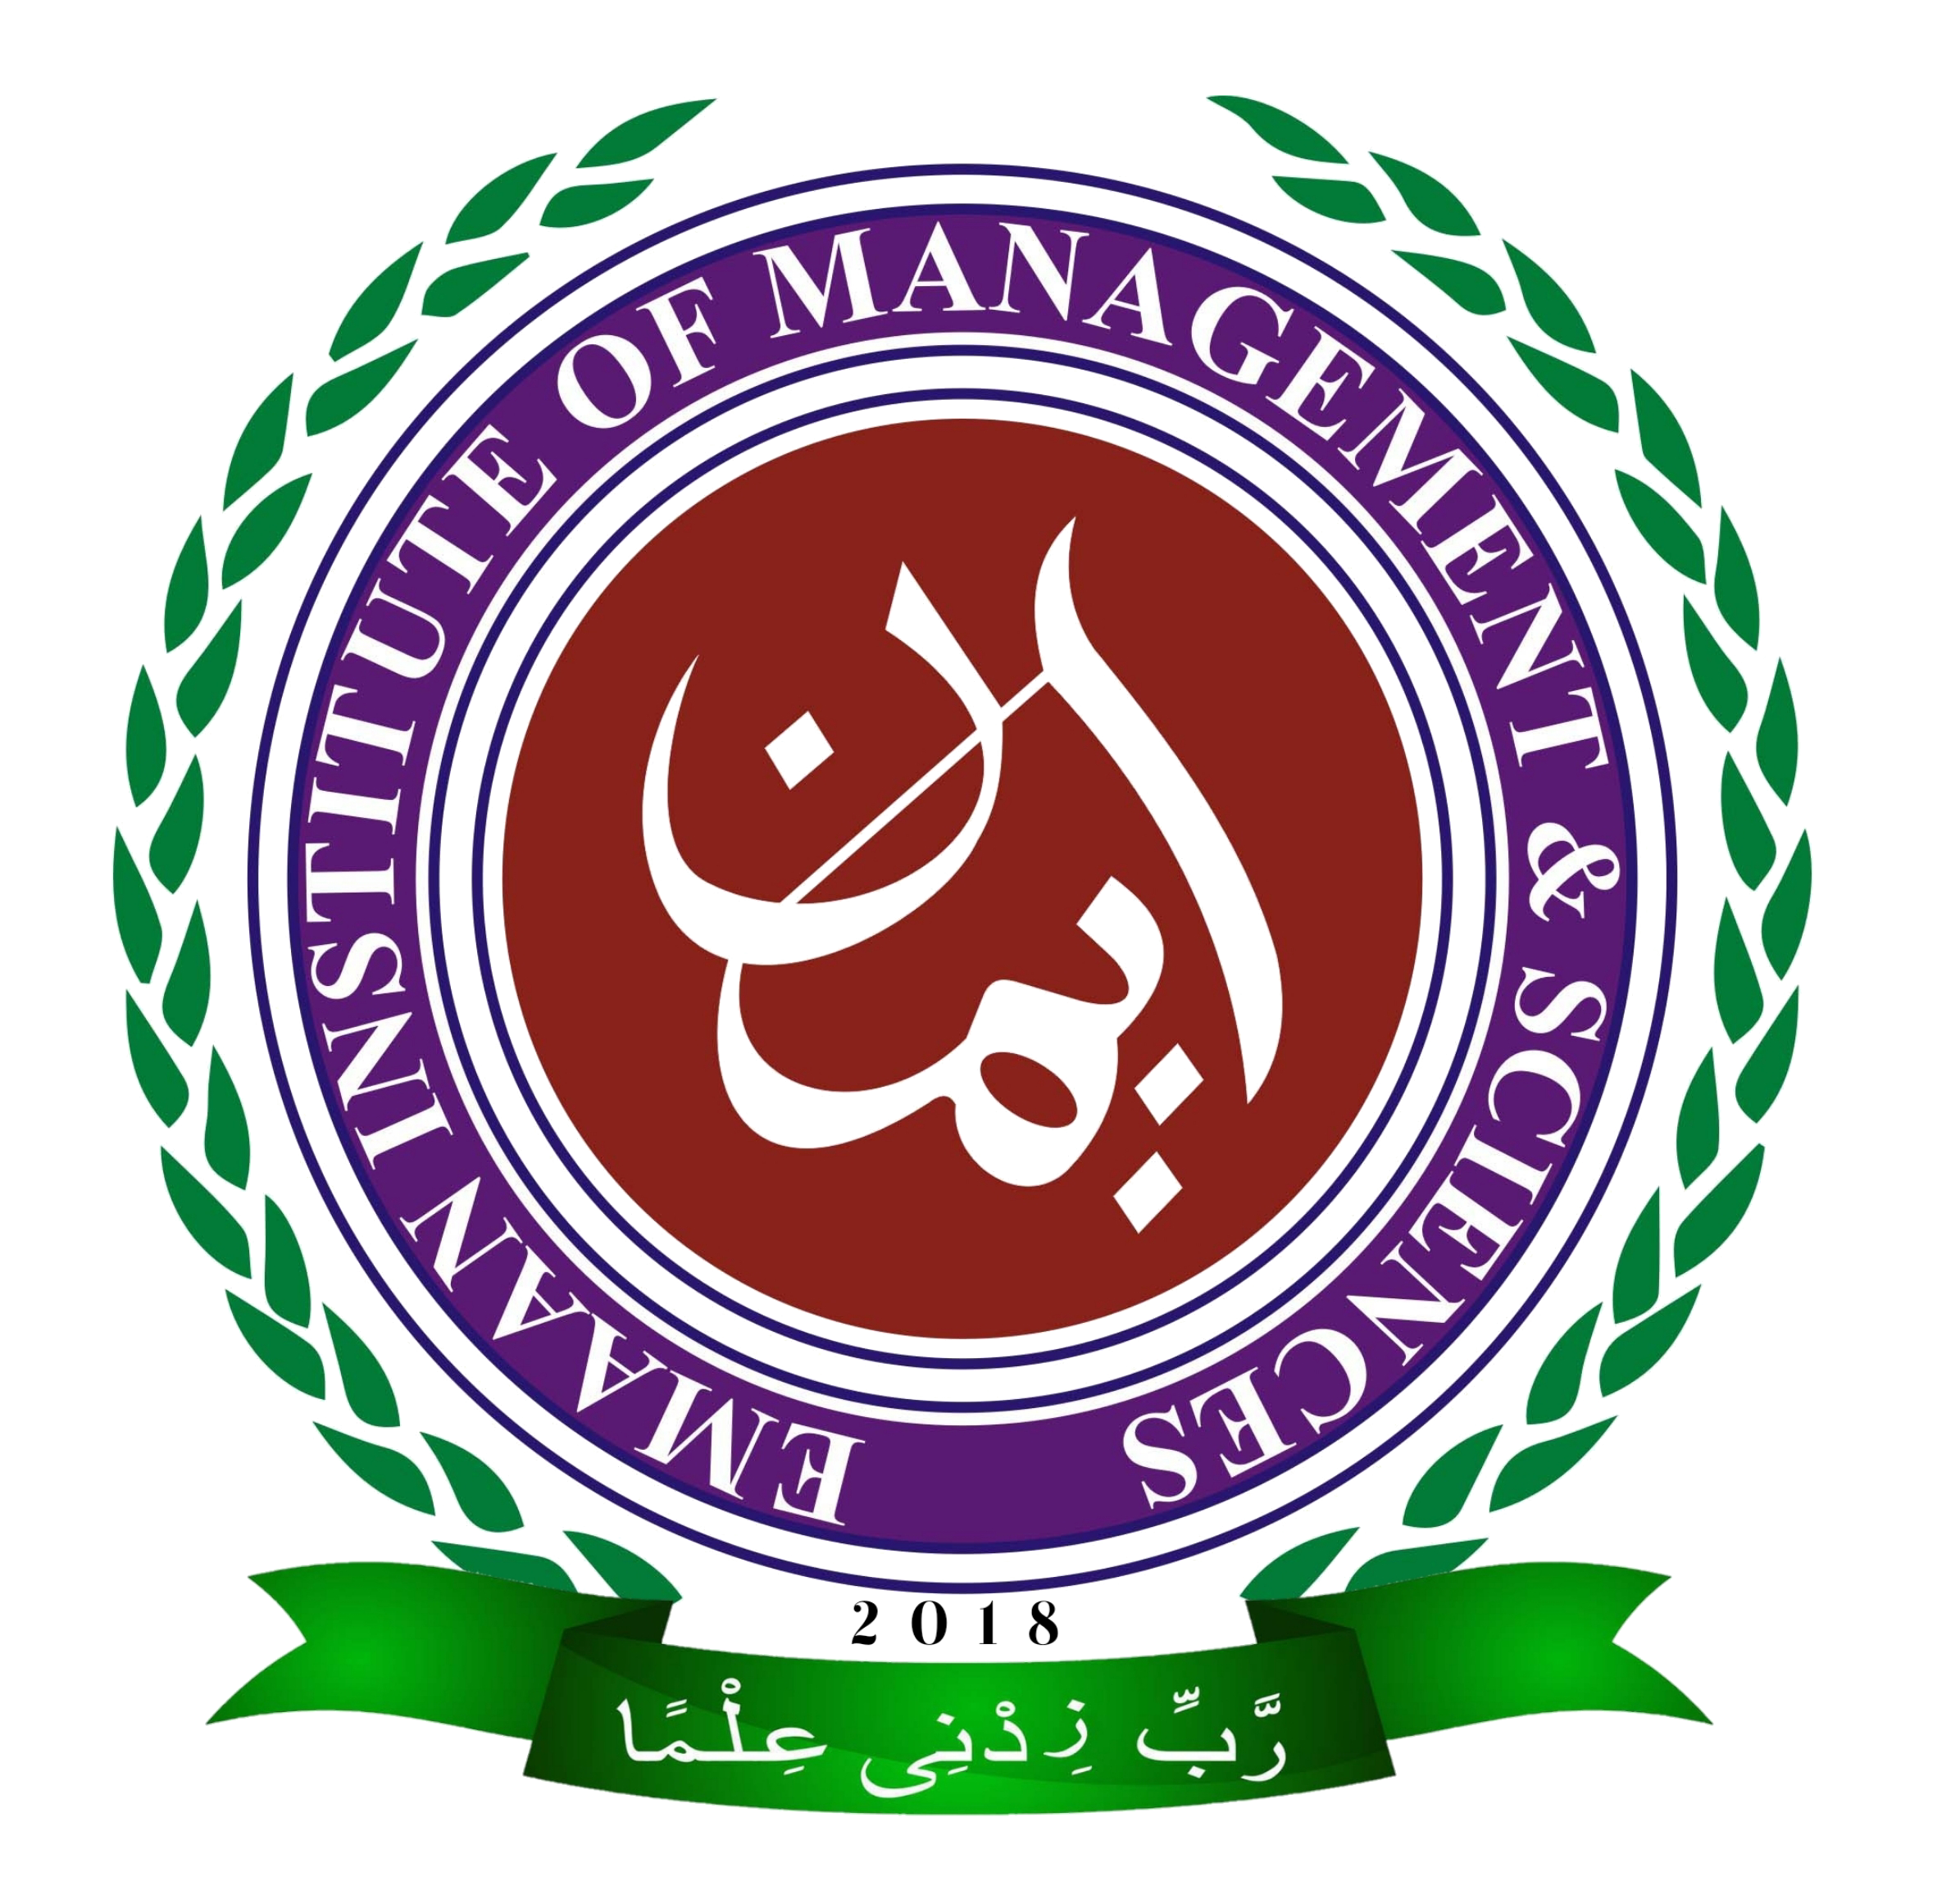 Emaan Institute of Management and Sciences Logo